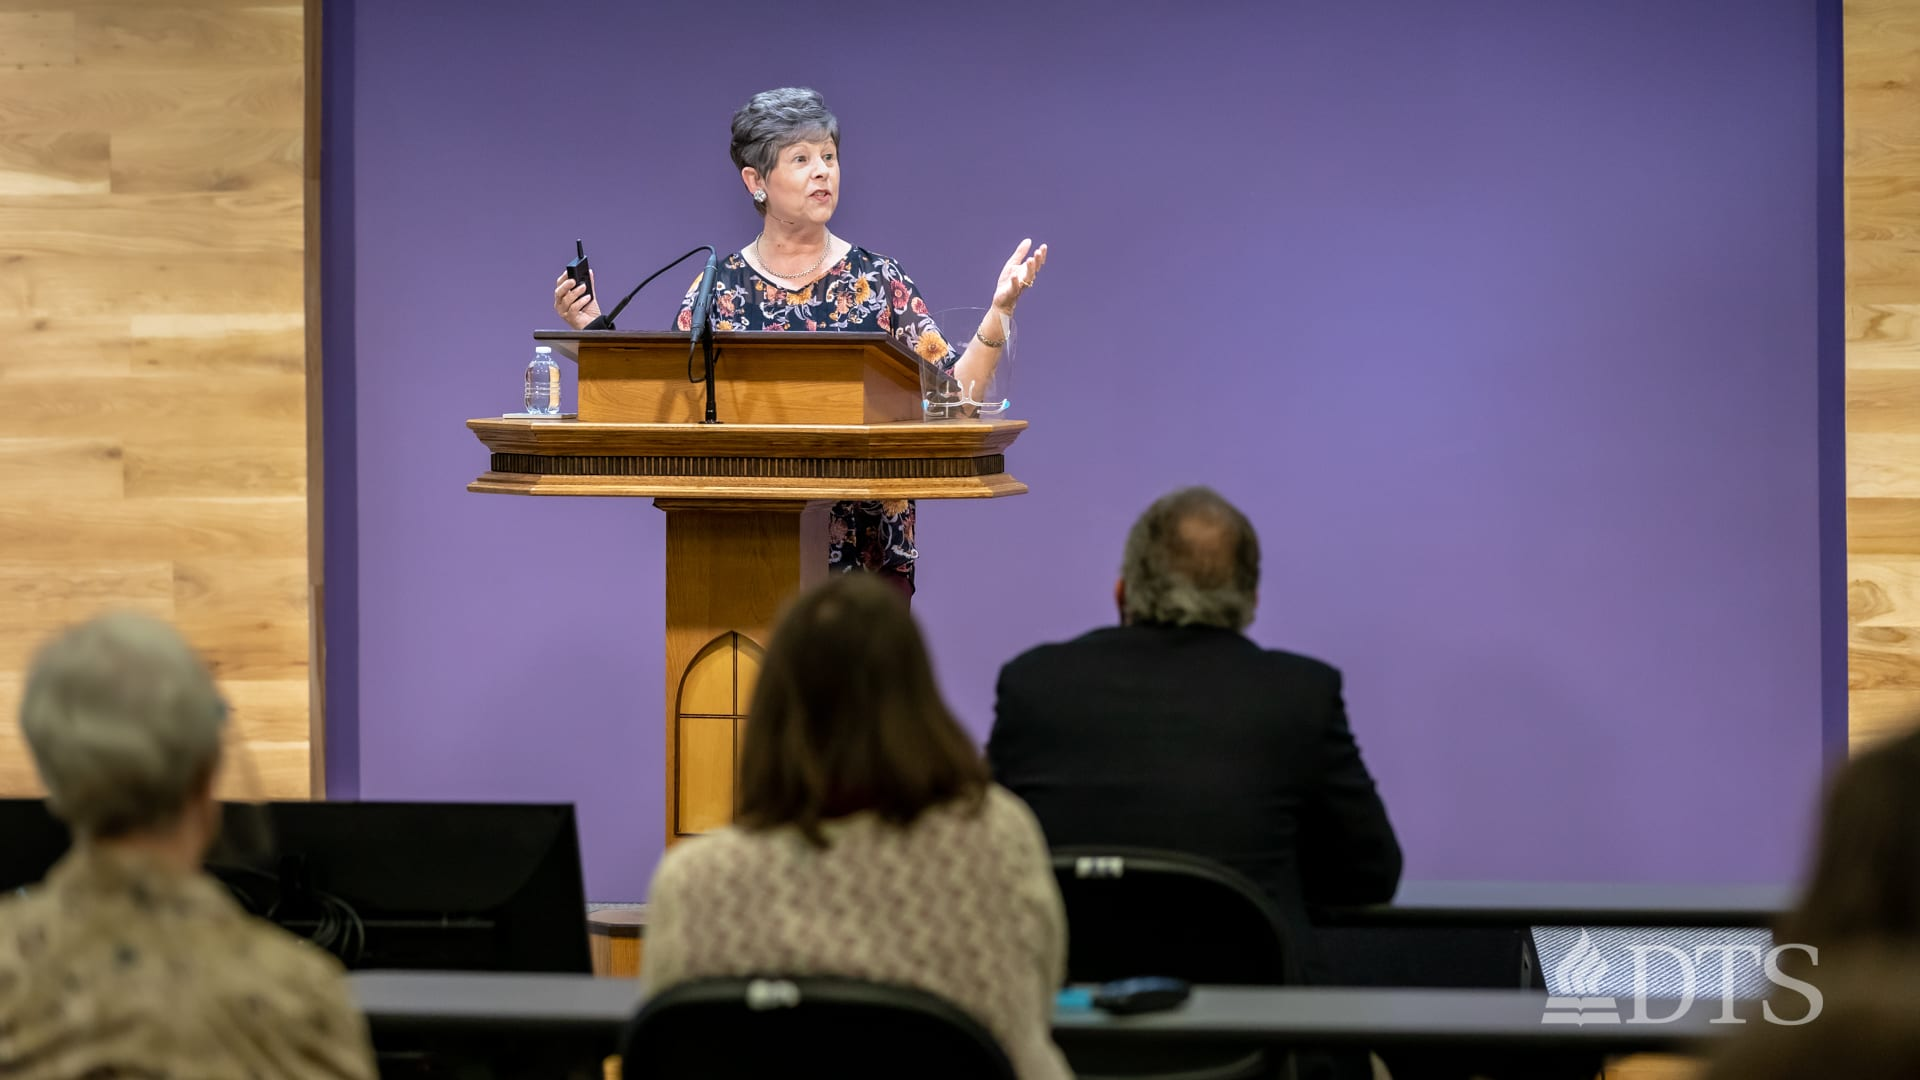 Dr. Sue Edwards in chapel at DTS